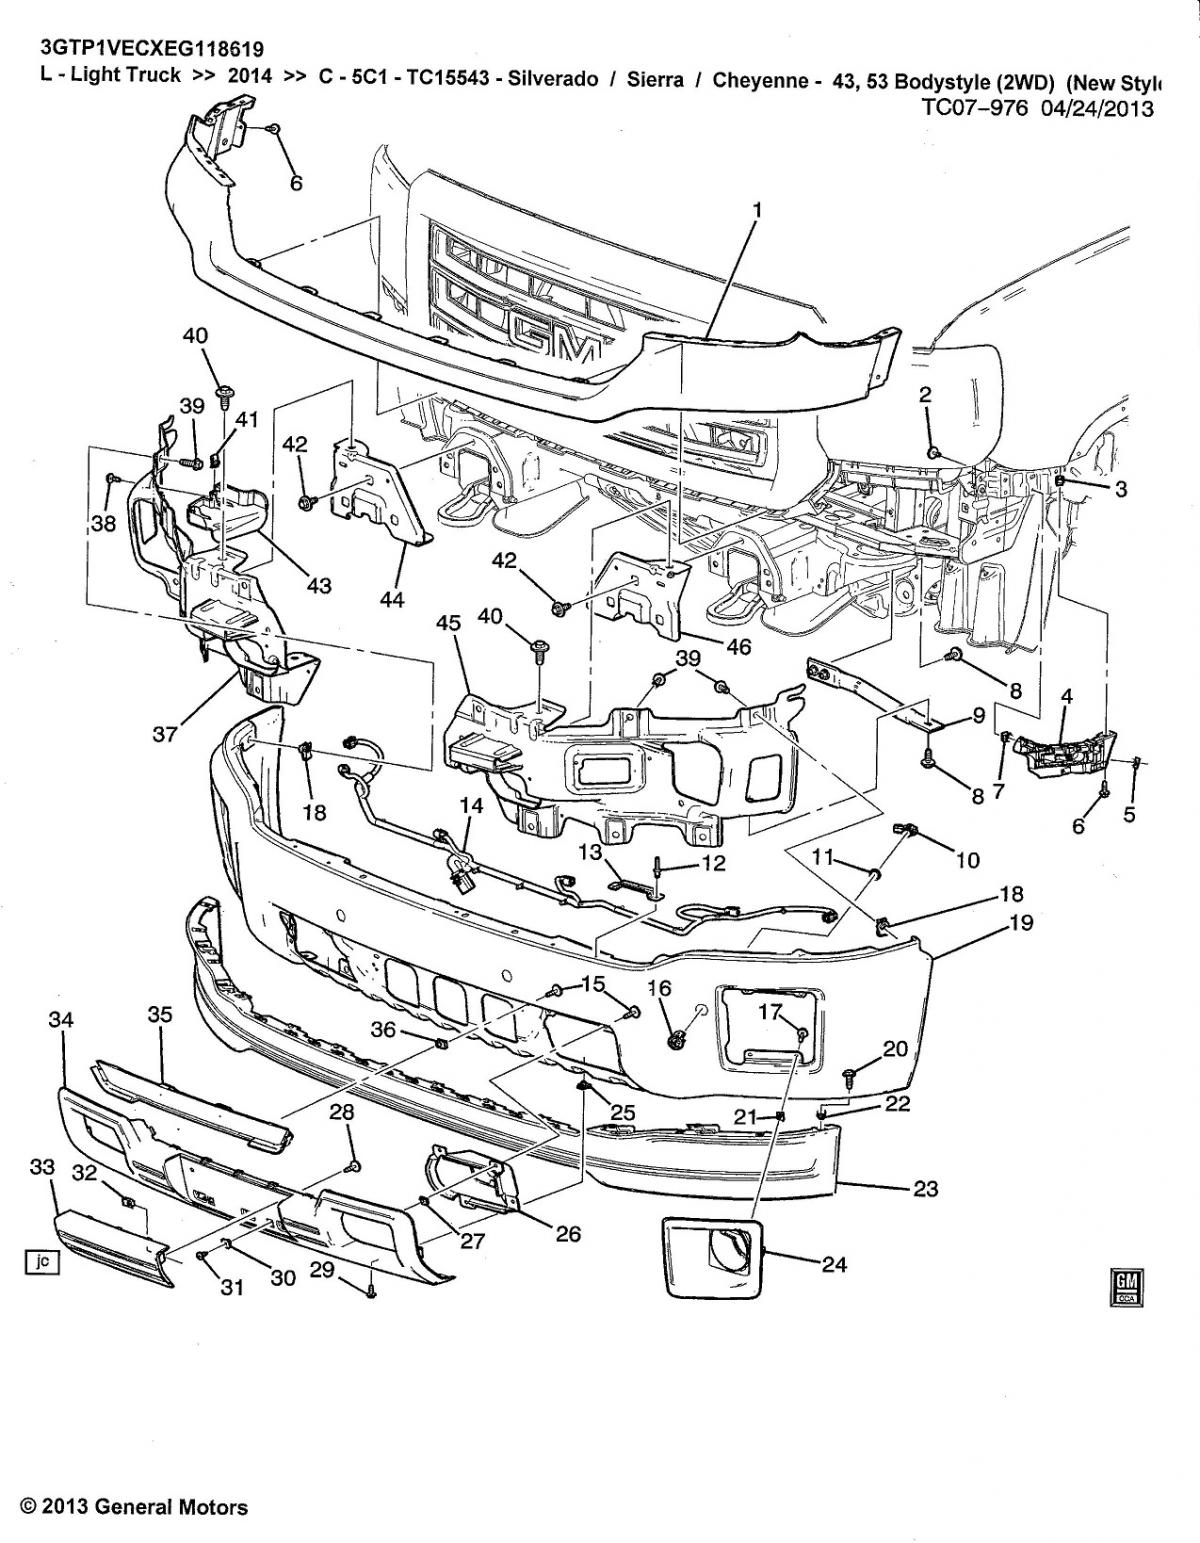 hight resolution of 2005 chevy silverado 1500 2wd 4 3l v6 diagram auto parts diagrams 2005 chevy silverado 1500 part diagram 2005 chevy silverado 1500 parts diagram